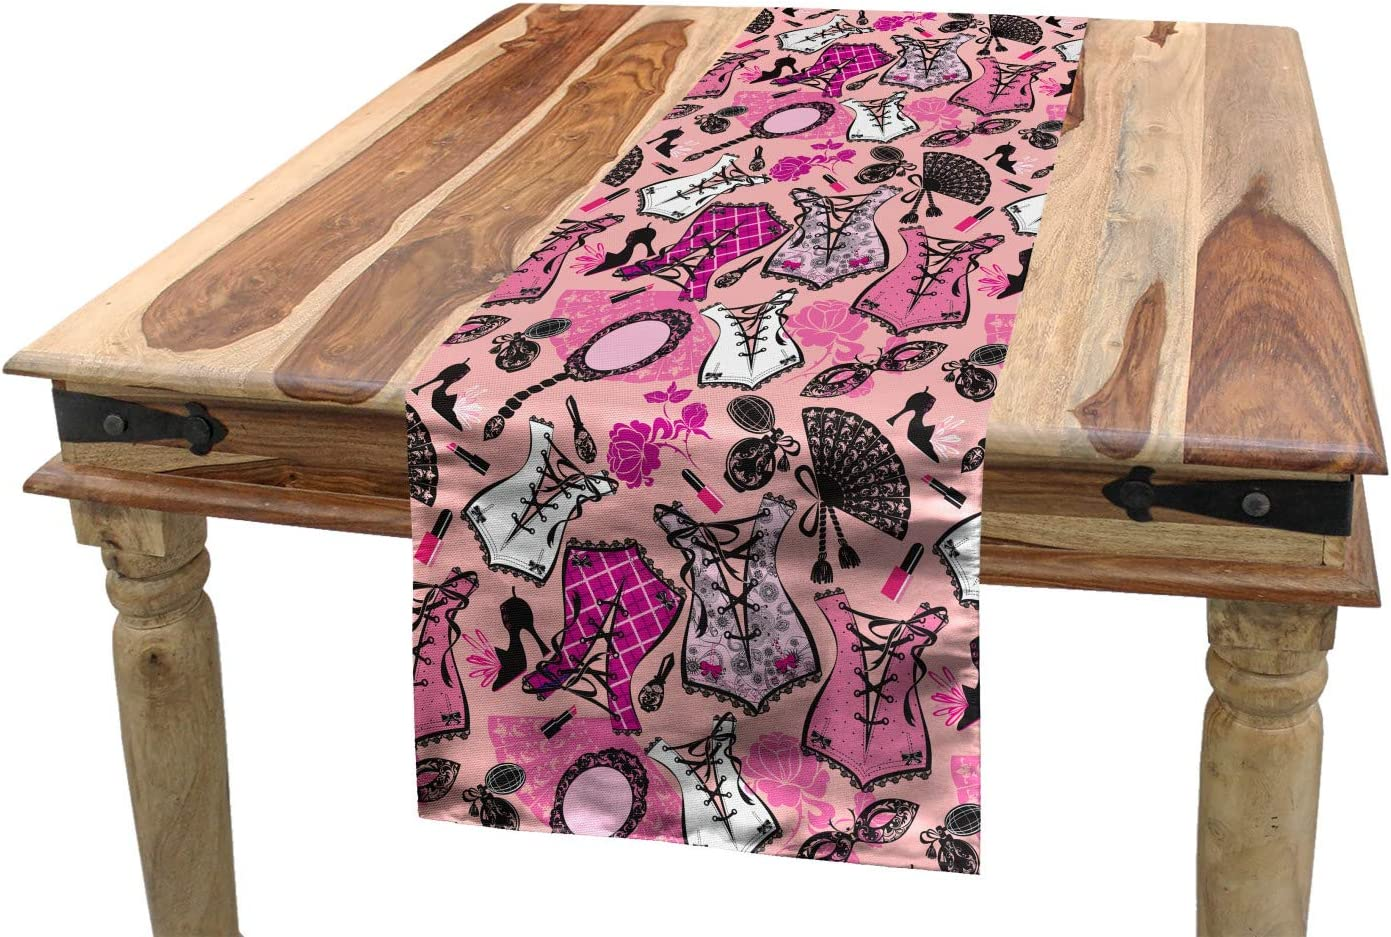 Lunarable Fashion Table Runner Vintage Female Accessories Corset Perfume Bottles Shoes Lipstick Mirror Roses Dining Room Kitchen Rectangular Runner 16 X 72 Black And Pink Home Kitchen